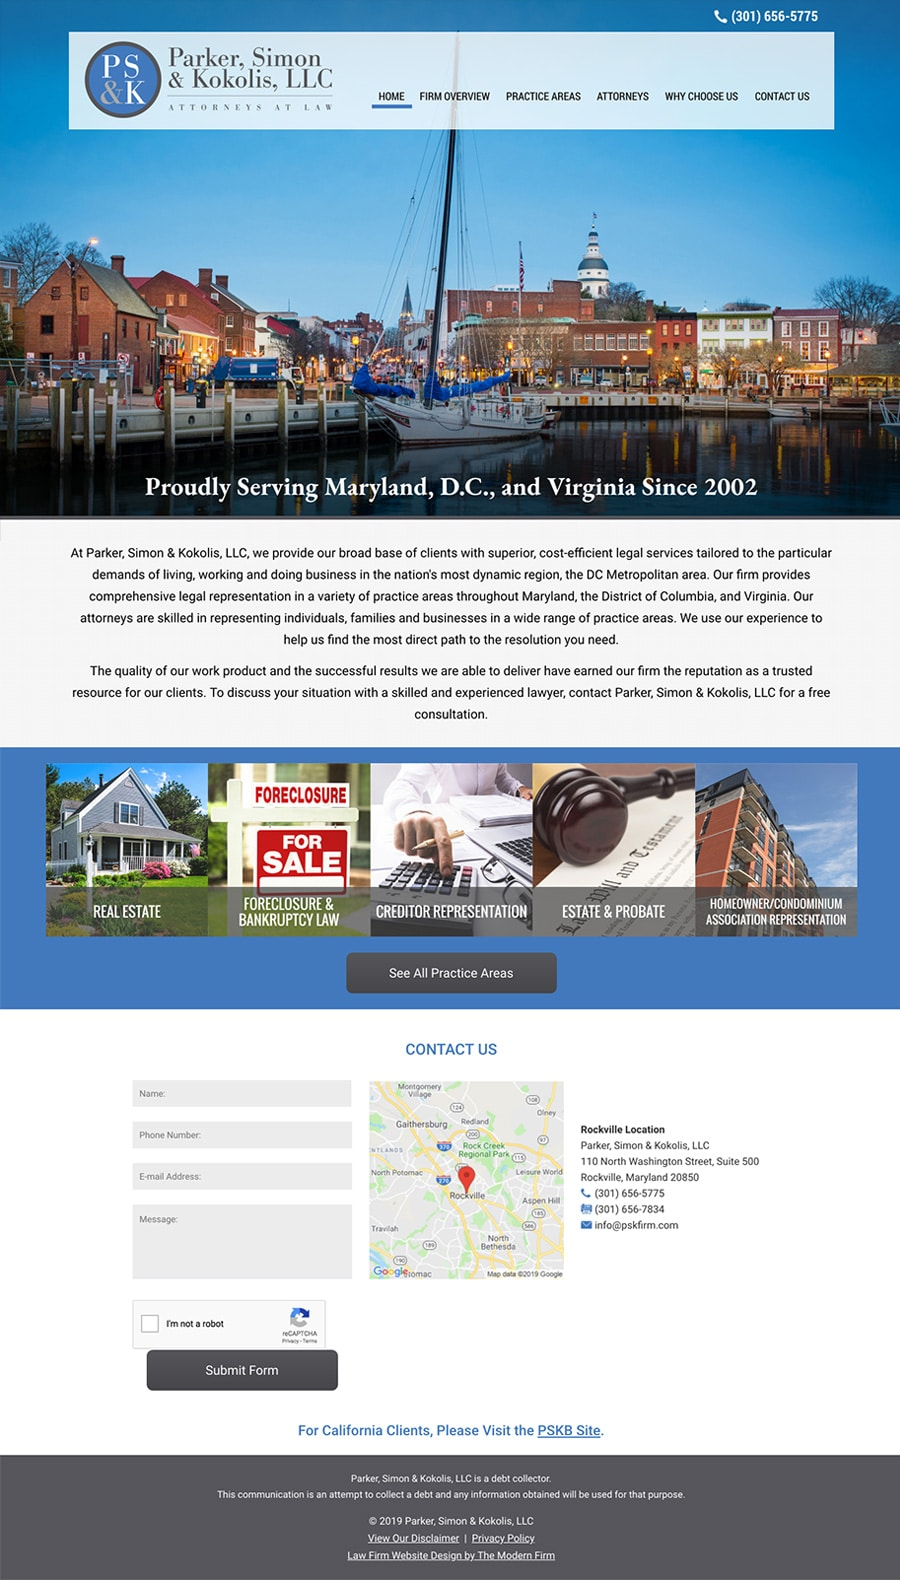 Law Firm Website Design for Parker, Simon & Kokolis, LLC